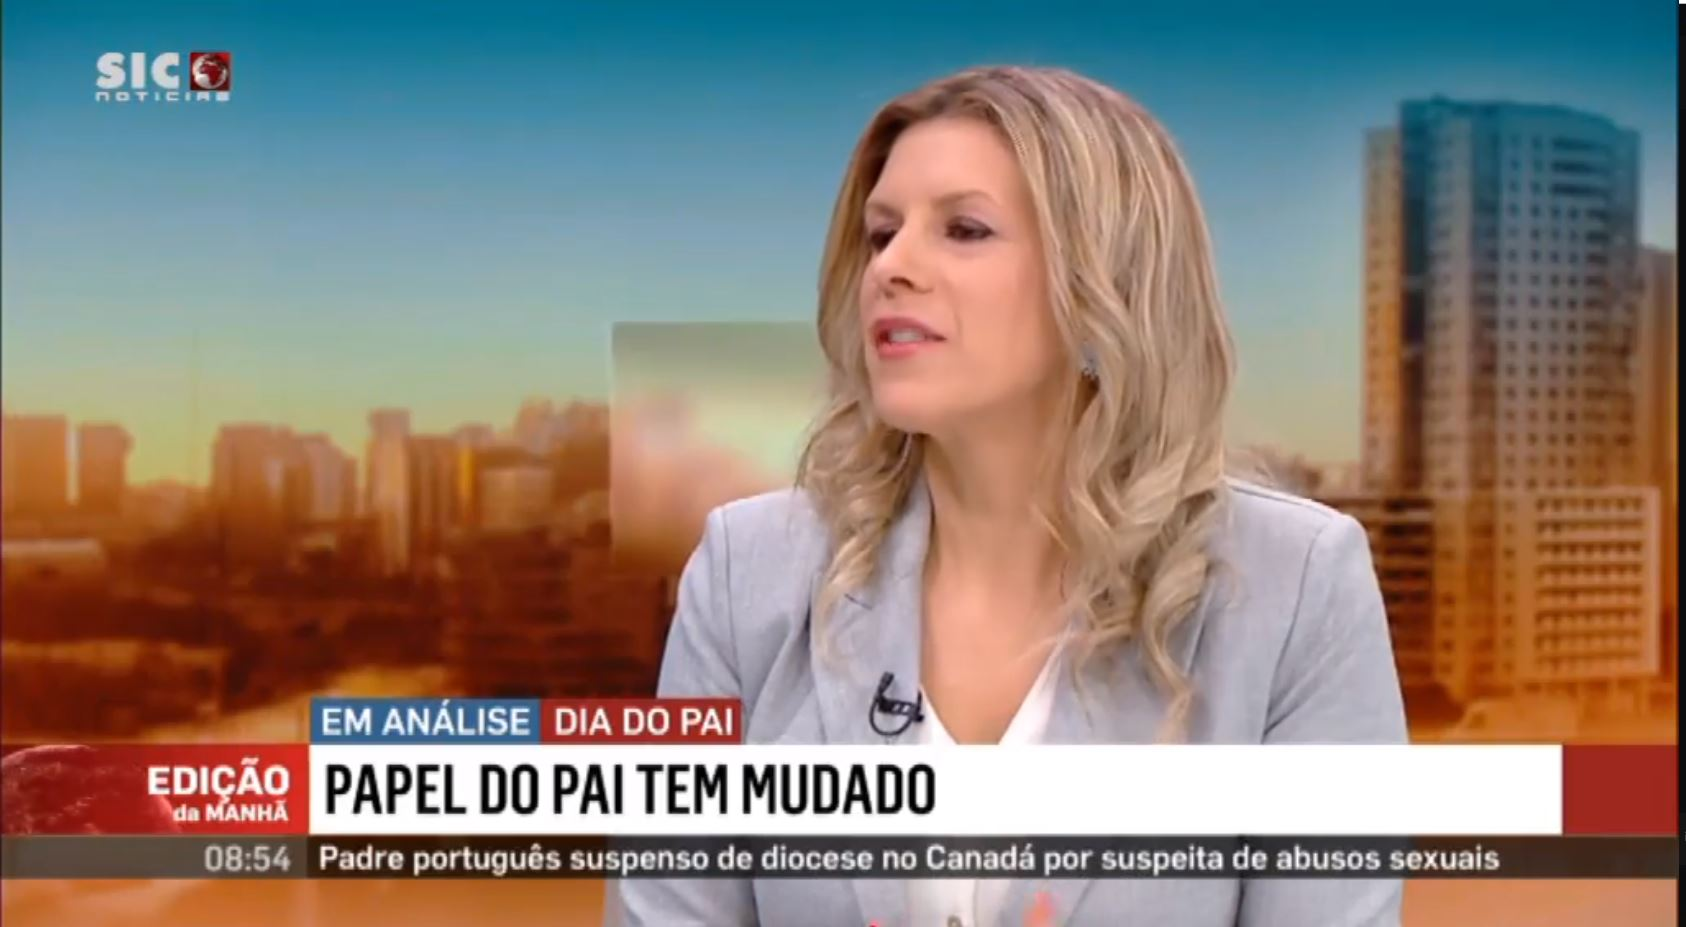 carla-oliveira-papel-do-pai-sic-noticias